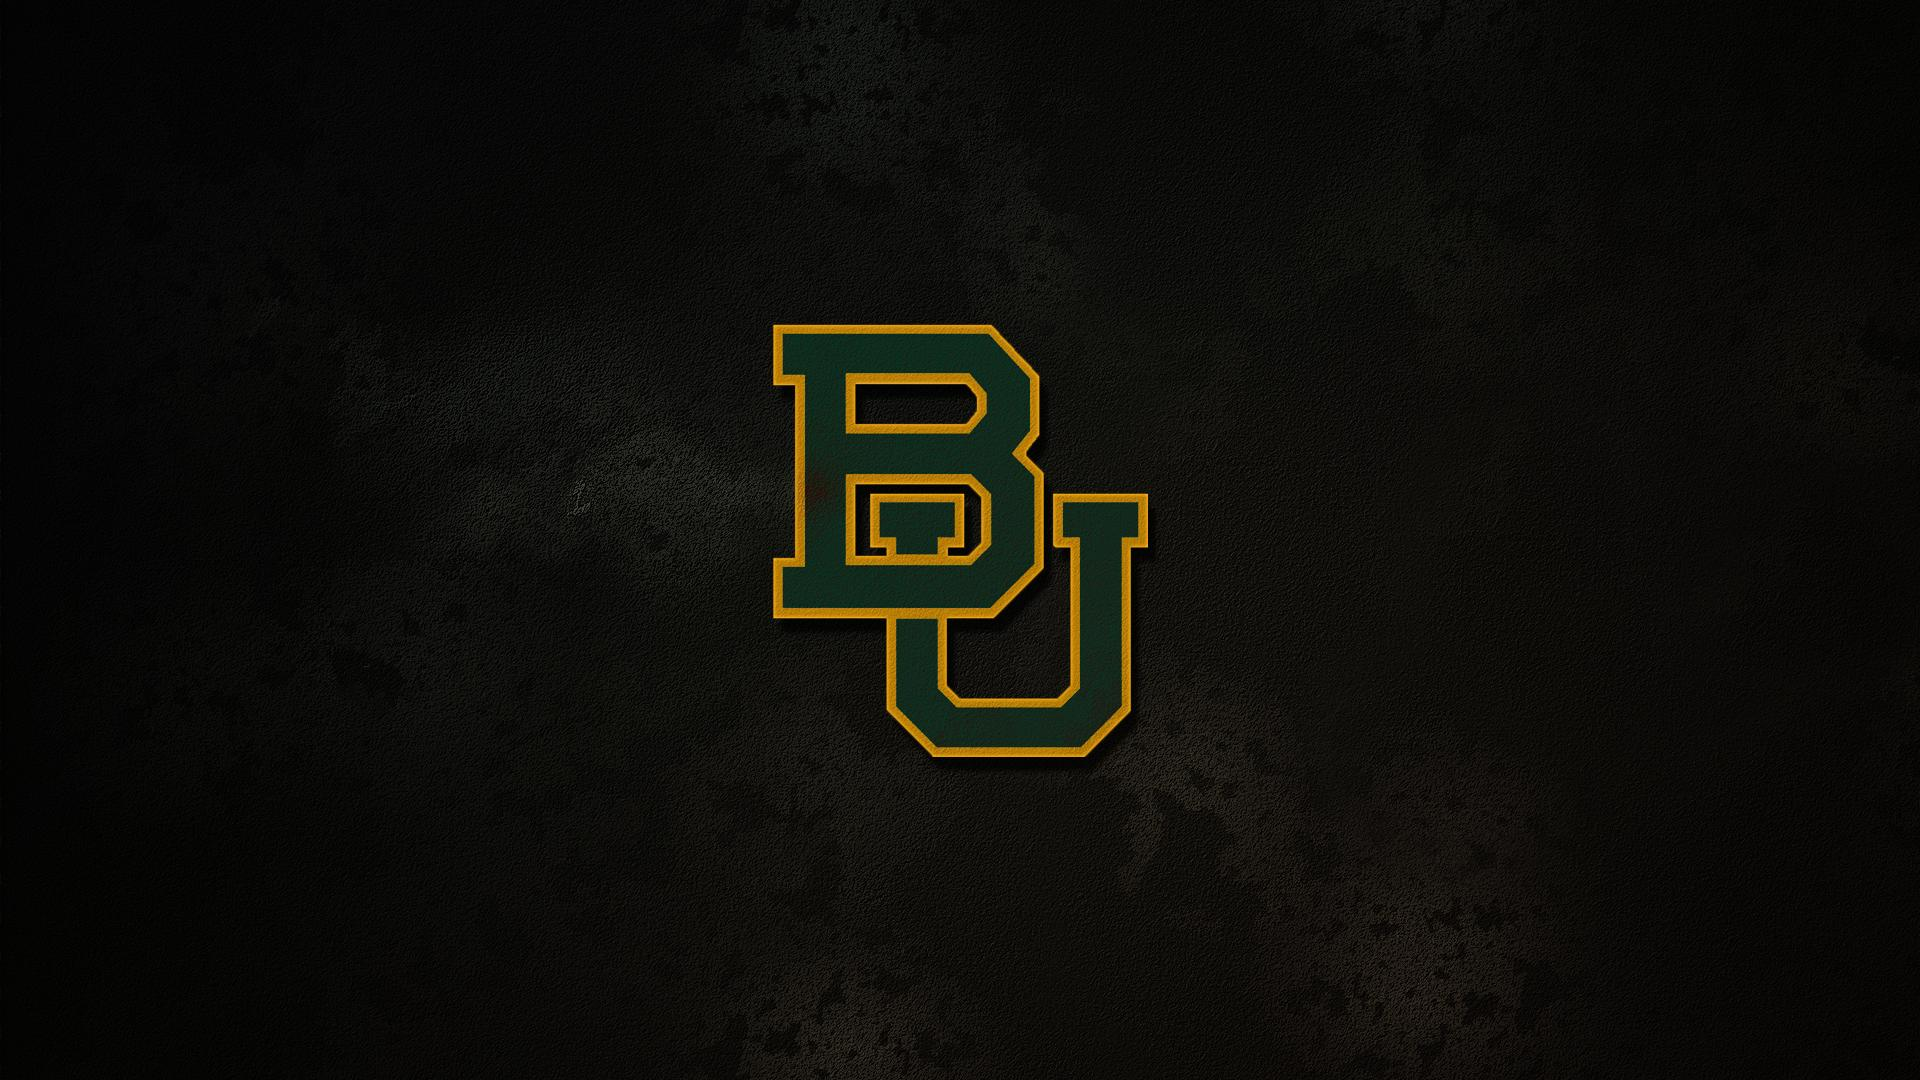 Baylor Wallpaper wwwpixsharkcom   Images Galleries 1920x1080